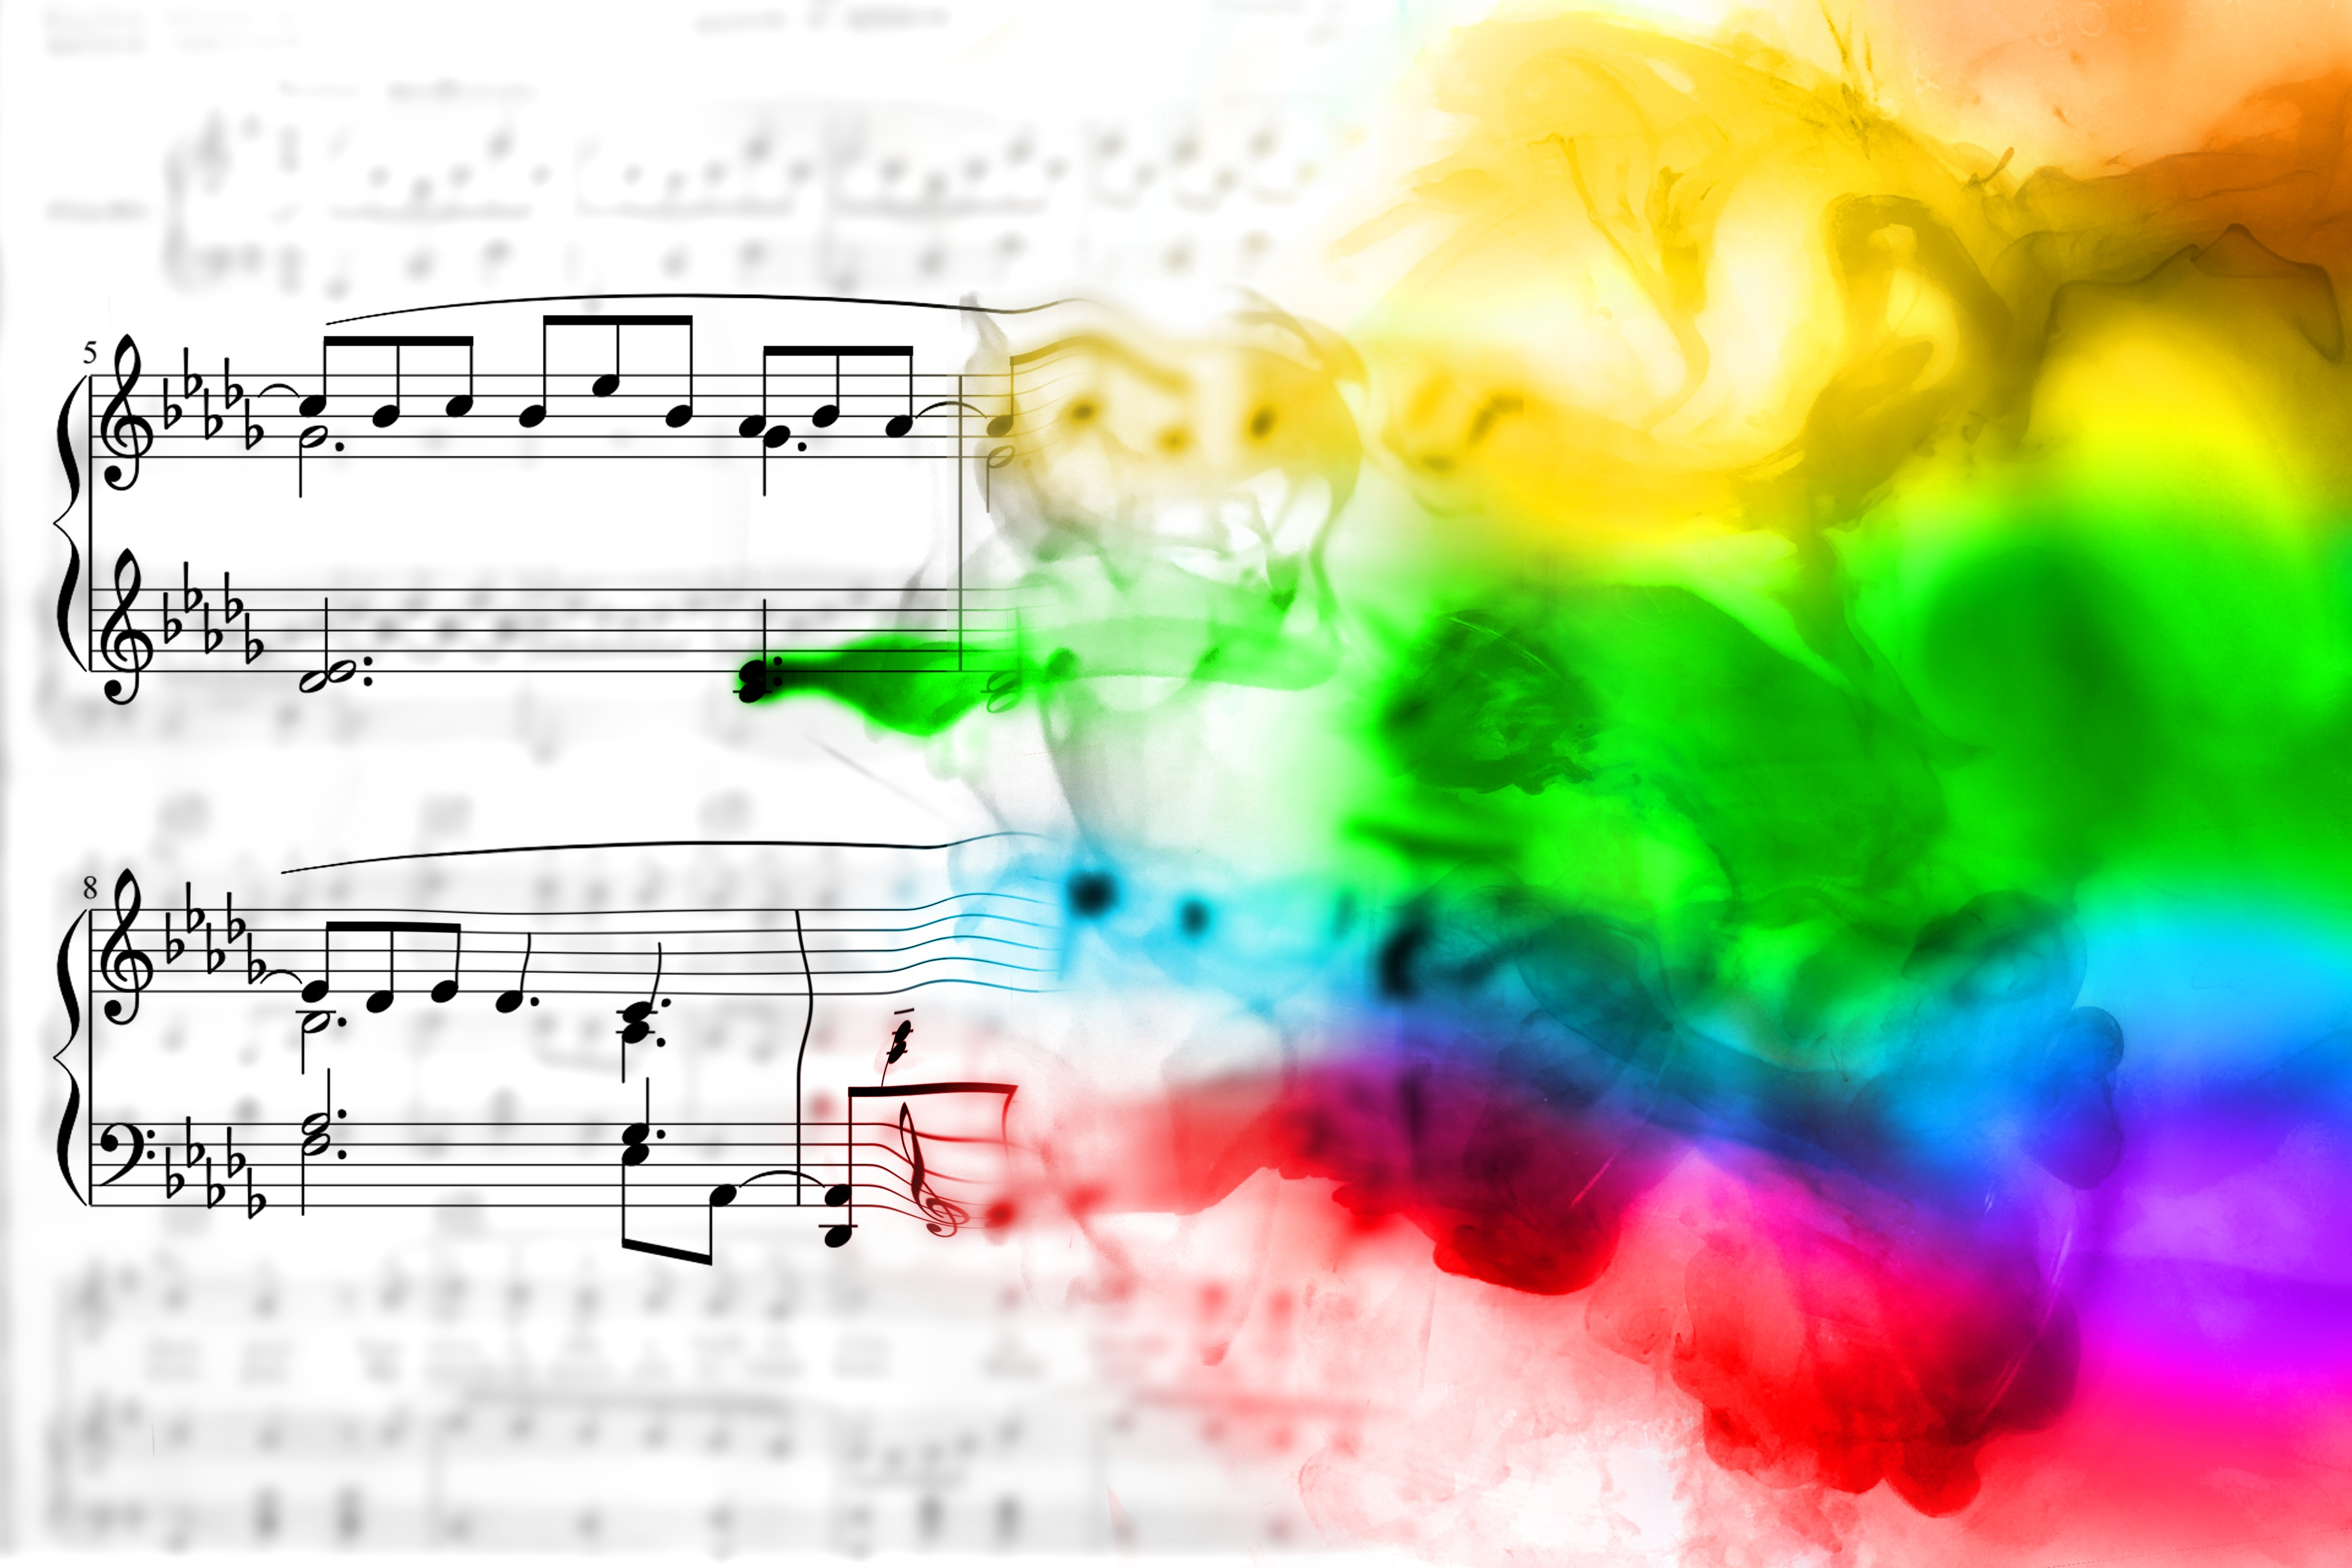 Image of musical notes blending in to watercolors.